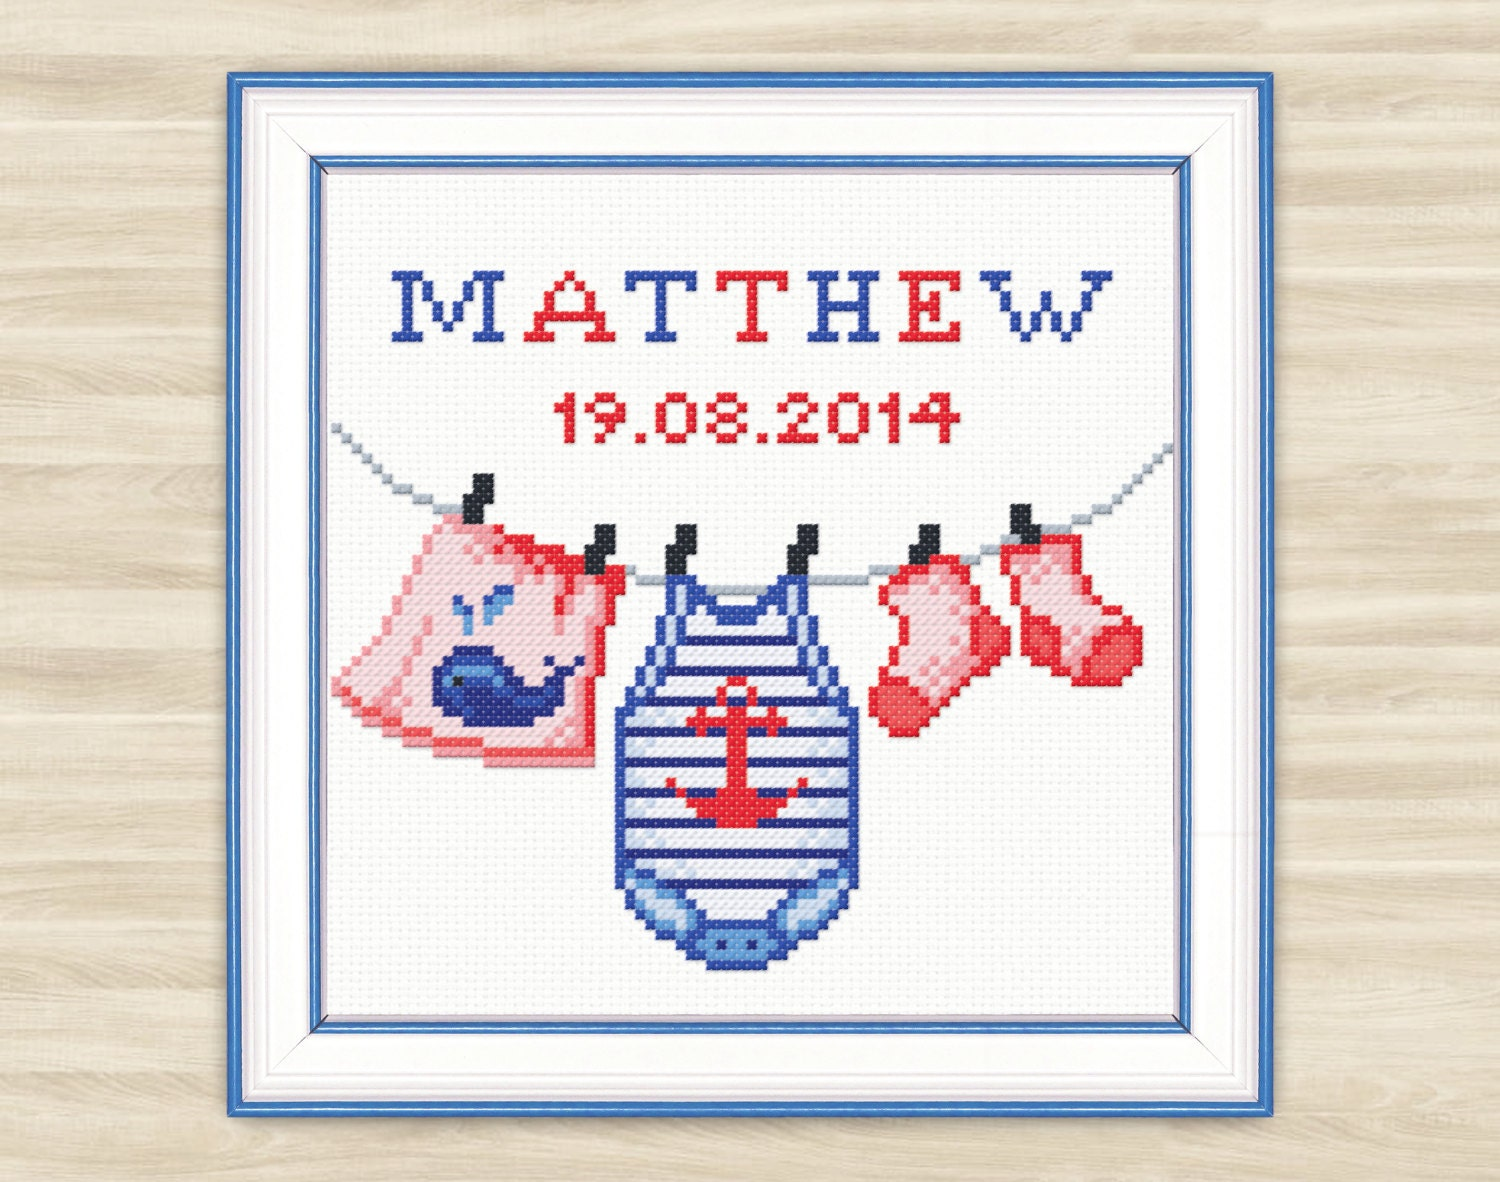 Buy 2 get 1 free Personalised Cross Stitch Pattern PDF birth Baby boy  newborn gift baby pattern announcement nautical clothes baby sea style